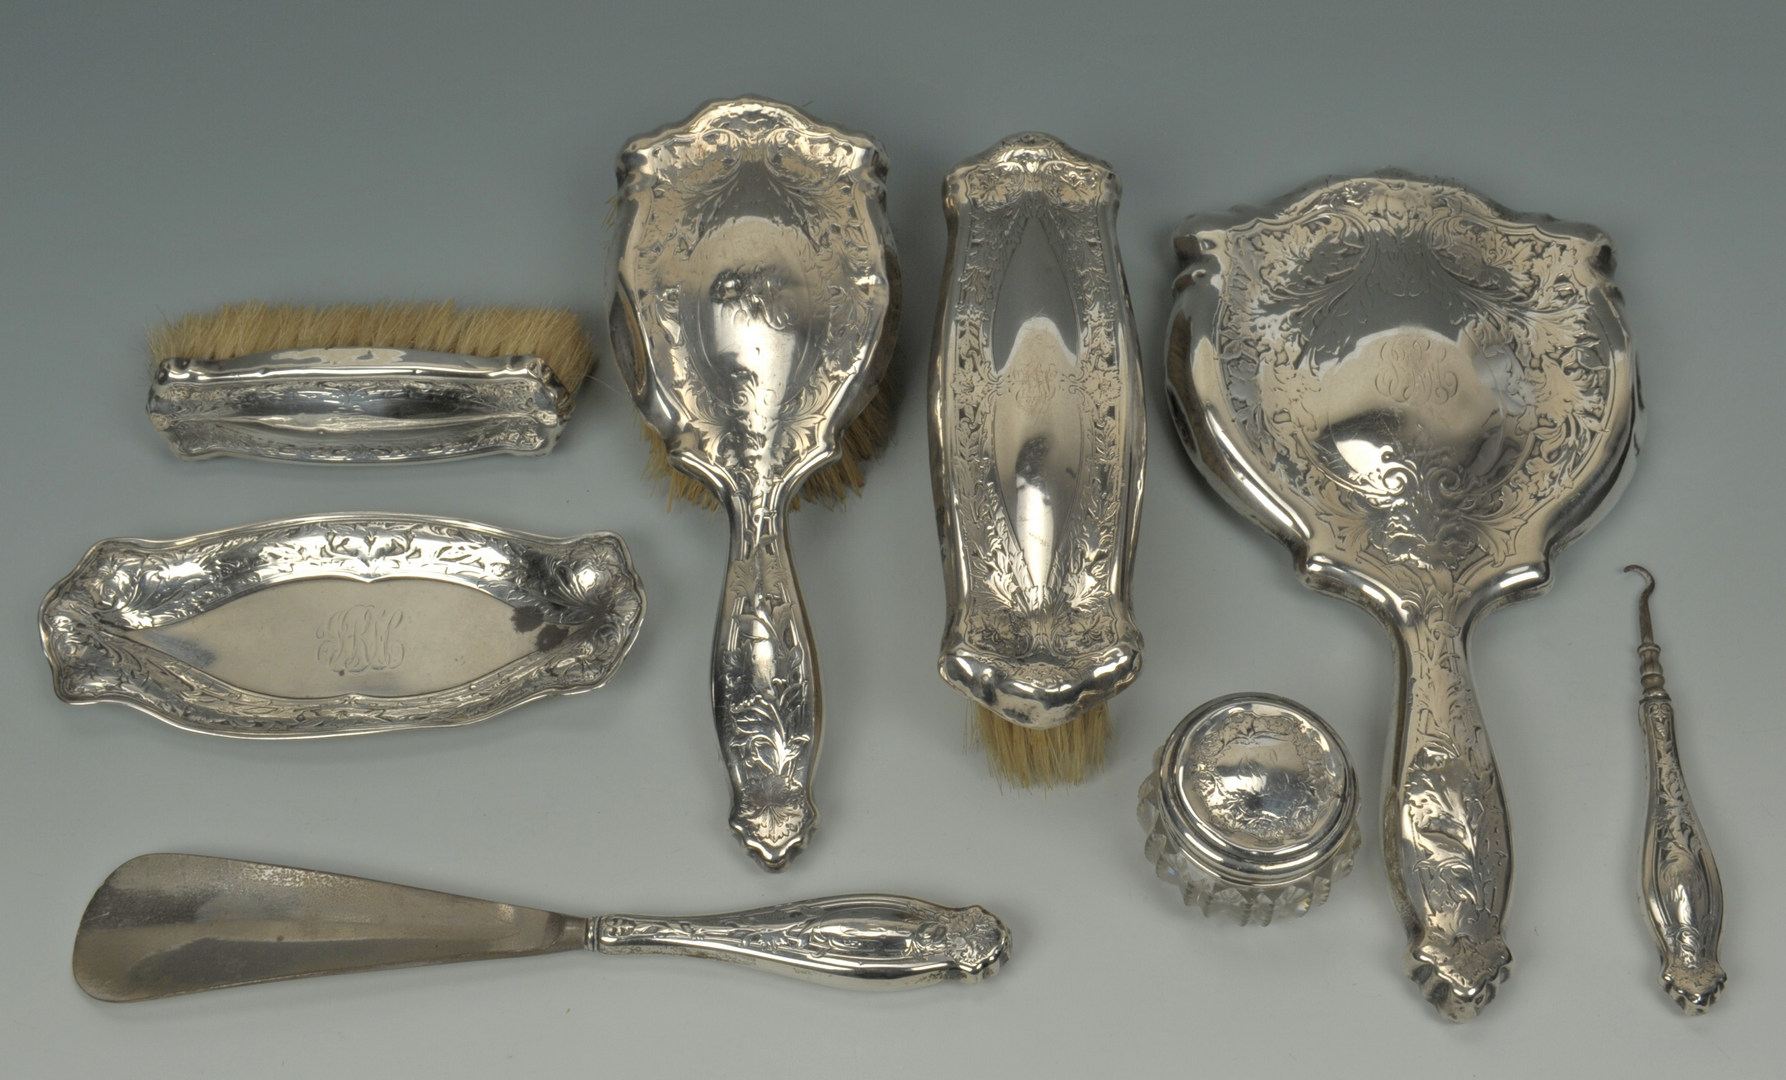 Lot 429: Assorted silver vanity items, 14 pieces